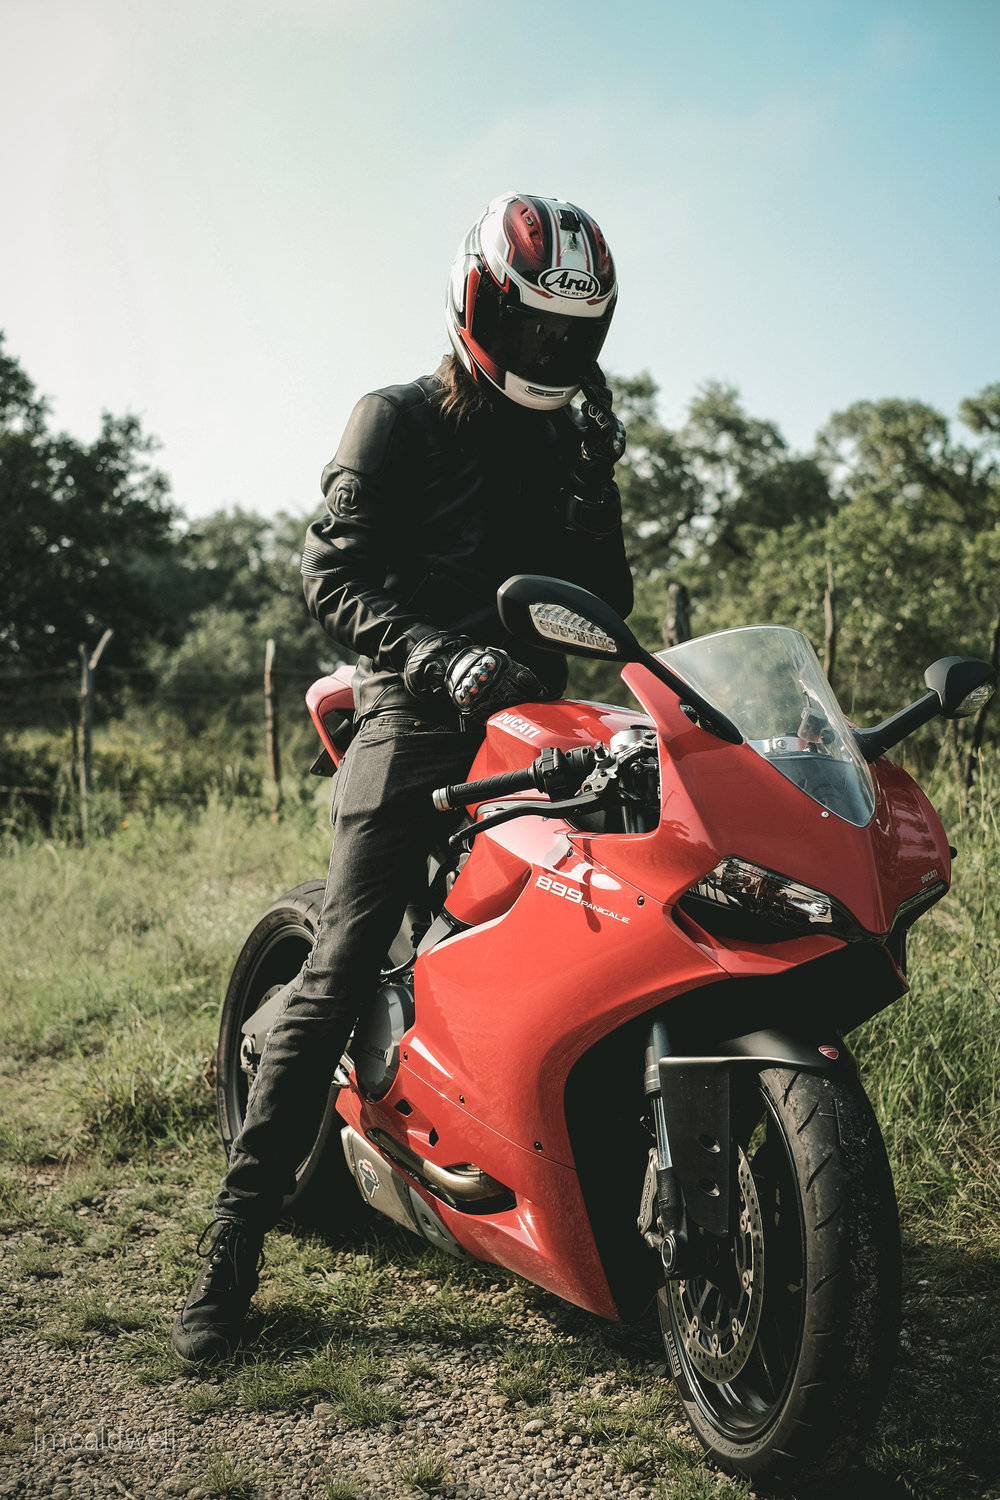 Out for a spin in Wimberley, TX on the Ducati Panigale 899